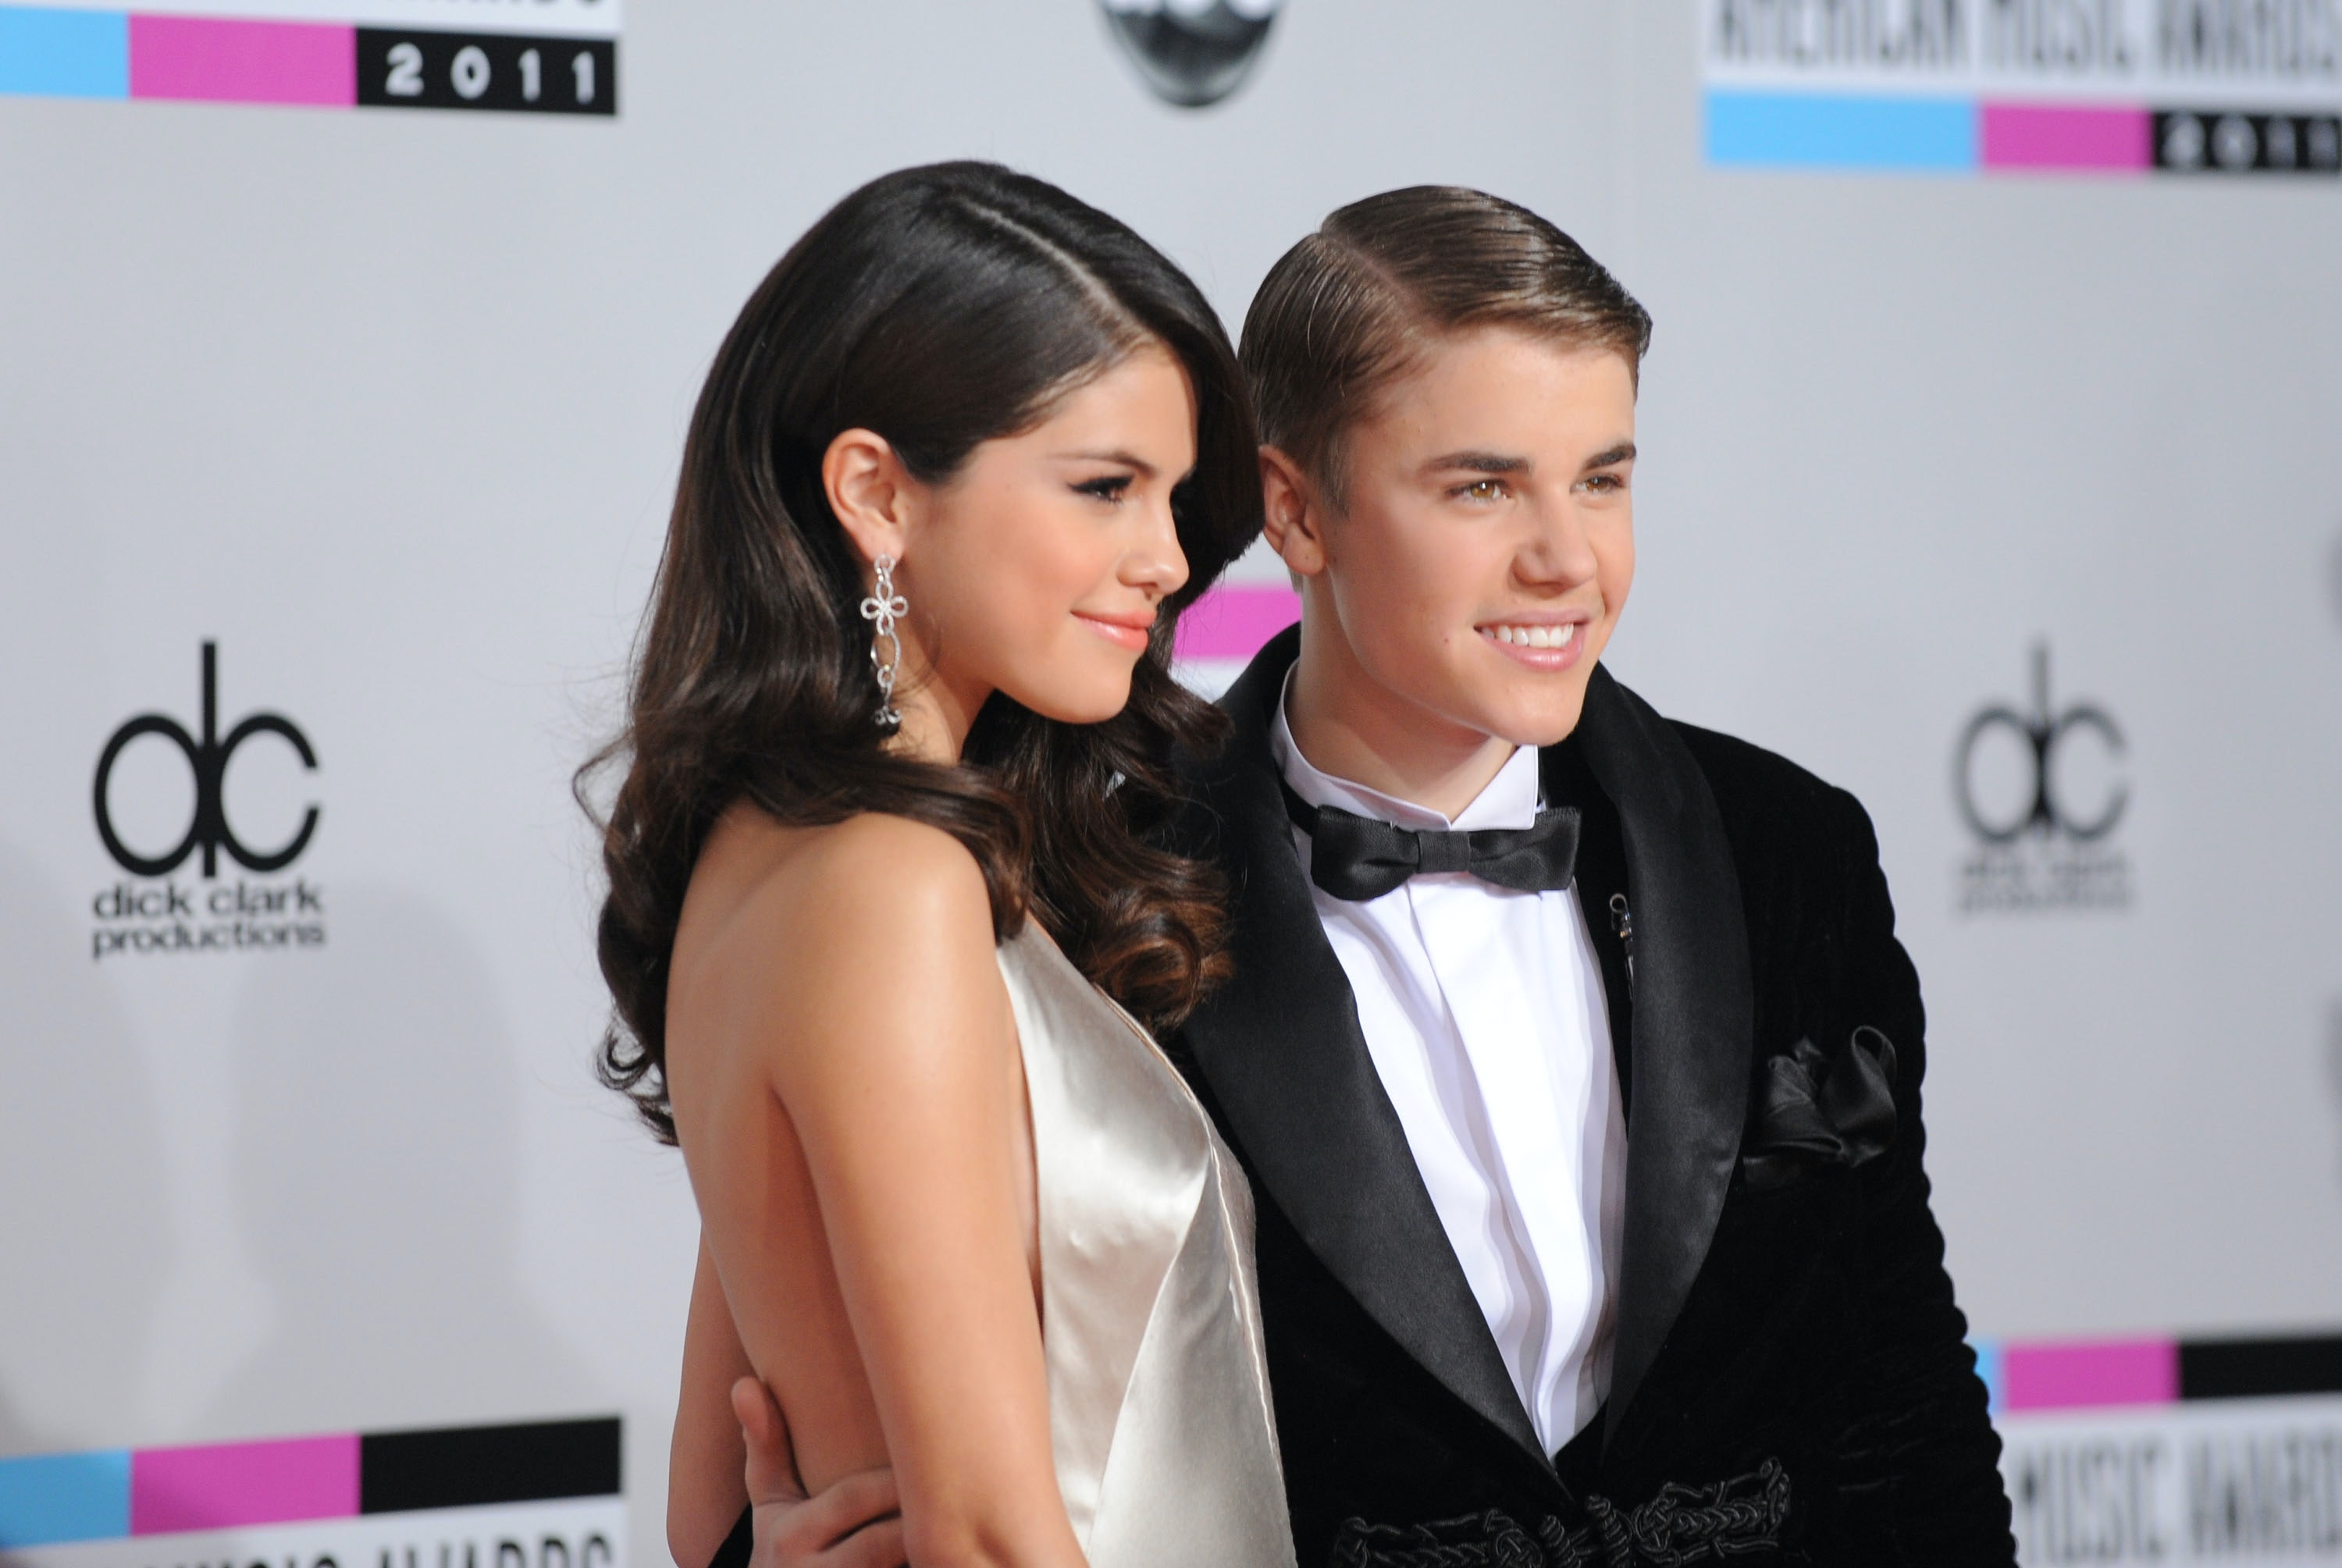 Selena Gomez's Mom Rushed To Hospital After Fight Over Justin Bieber?